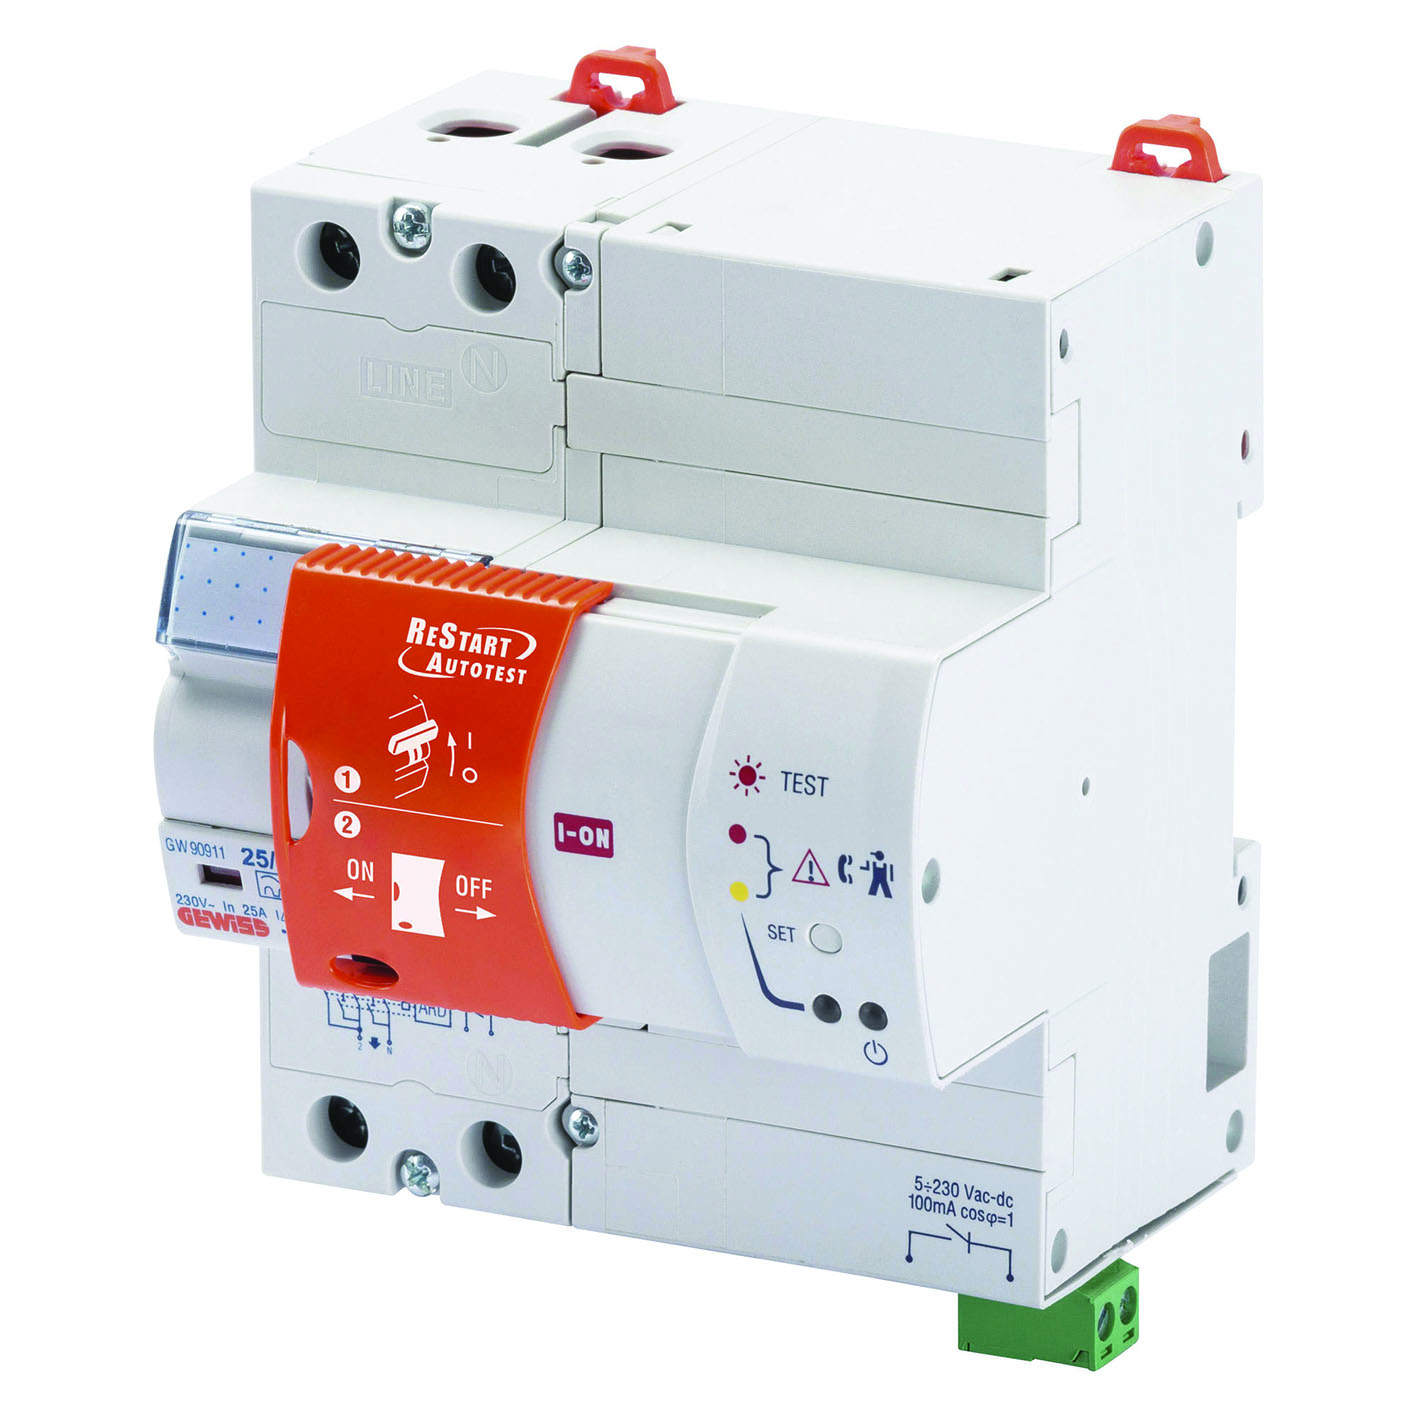 Switchgear For Total Safety Ee Publishers How To Reset A Tripped Circuit Breaker Gewiss Offers The Restart Solution Which Ensures Service Continuity In Case Of Untimely Tripping And Only Resets Residual Current